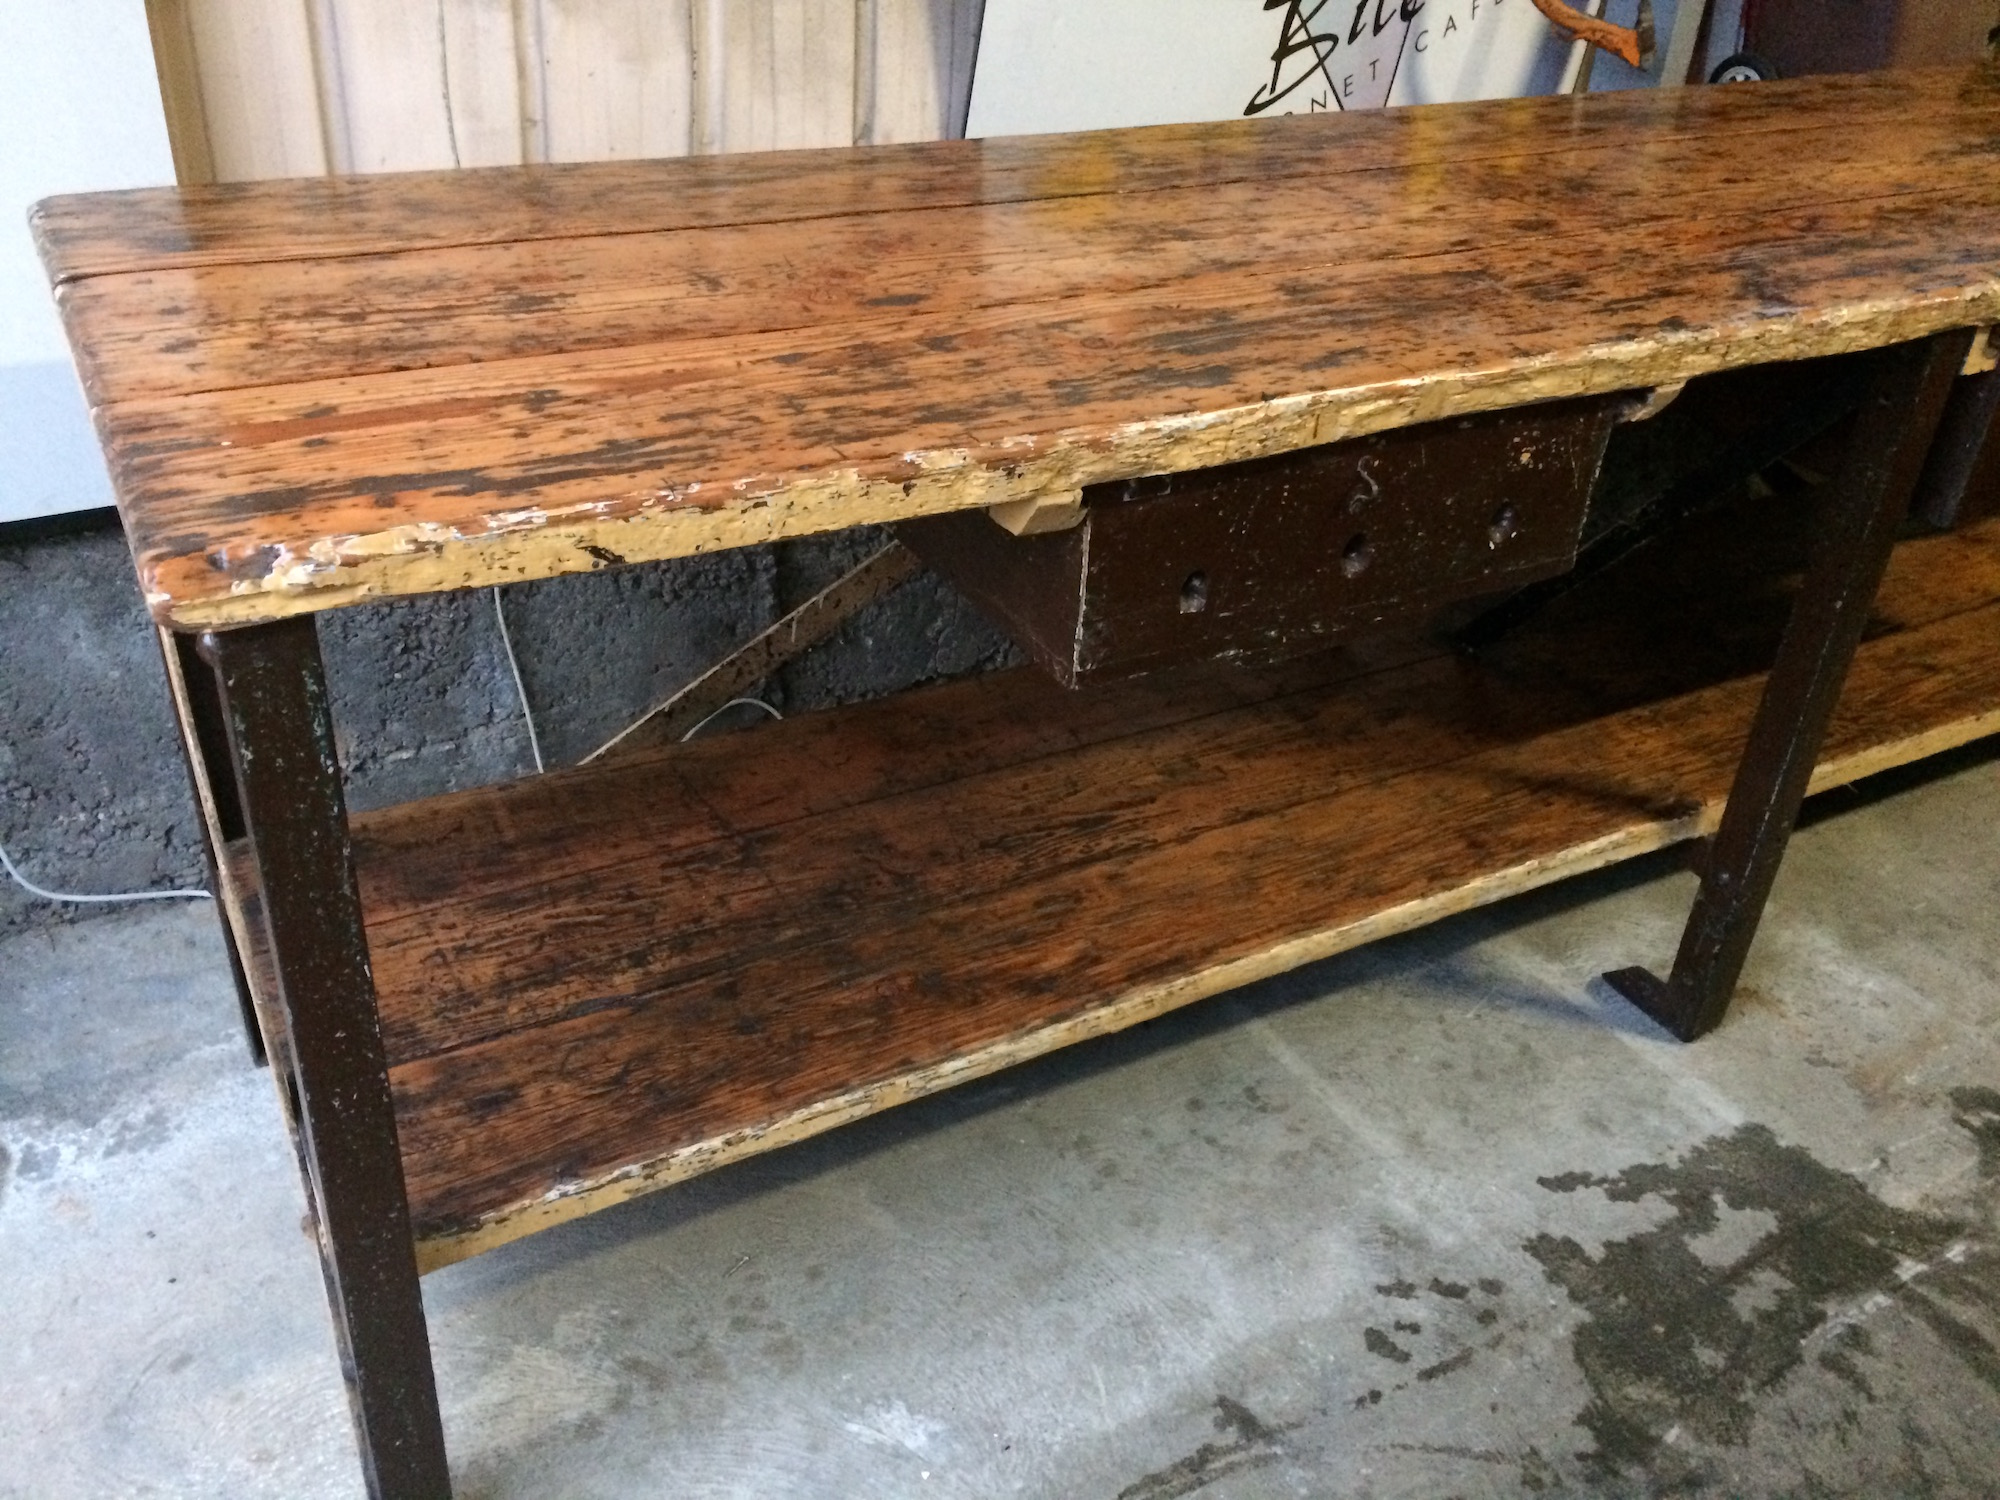 Industrial Vintage Timber Rustic Work Bench Cafe Kitchen Table | Melbourne | Halsey Road Recyclers